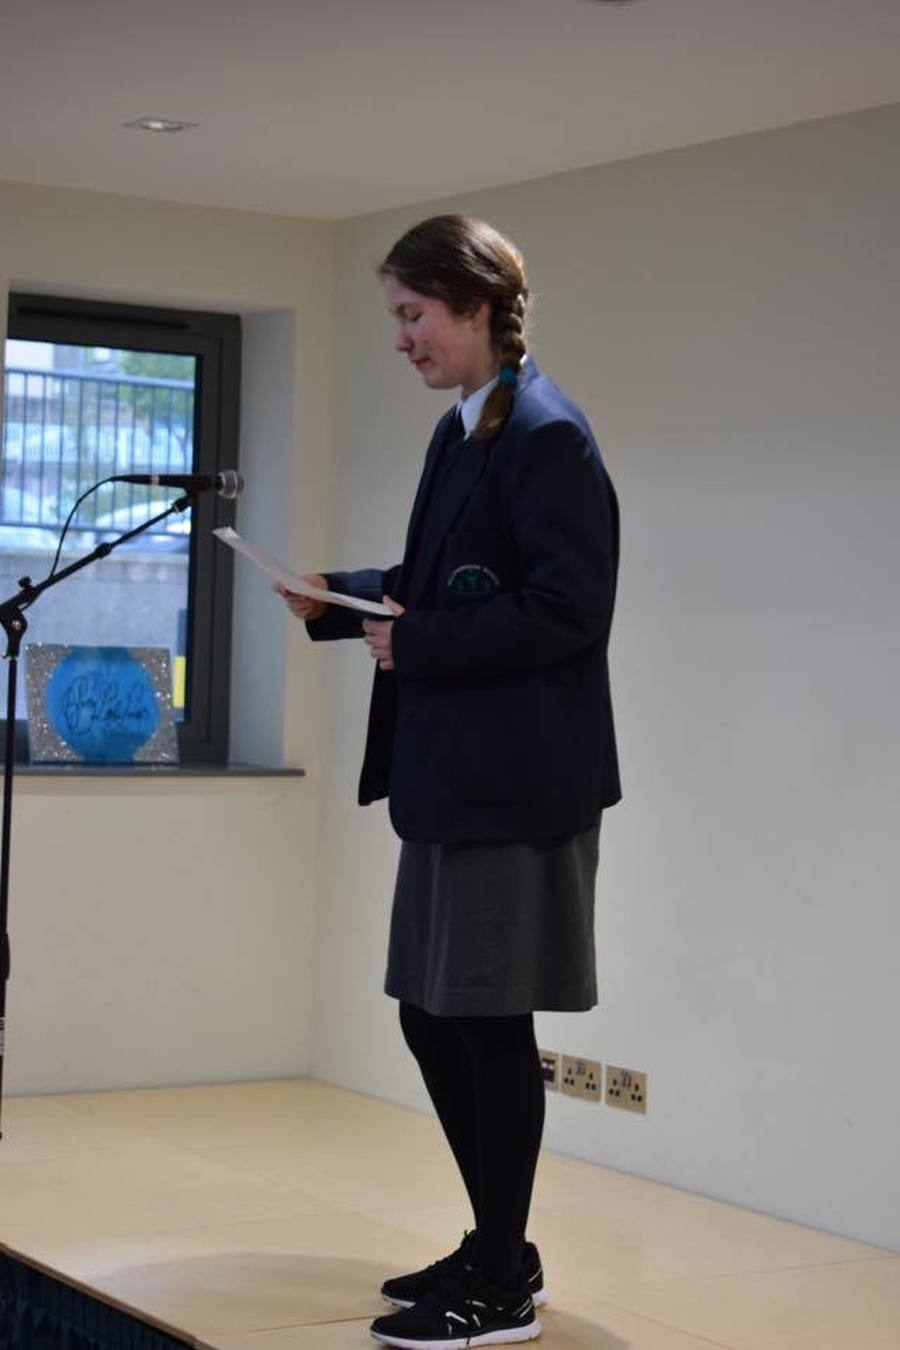 One of our pupils in 4B took part in National Poetry Day. Eve did a fantastic job reading the poem - well done Eve!!